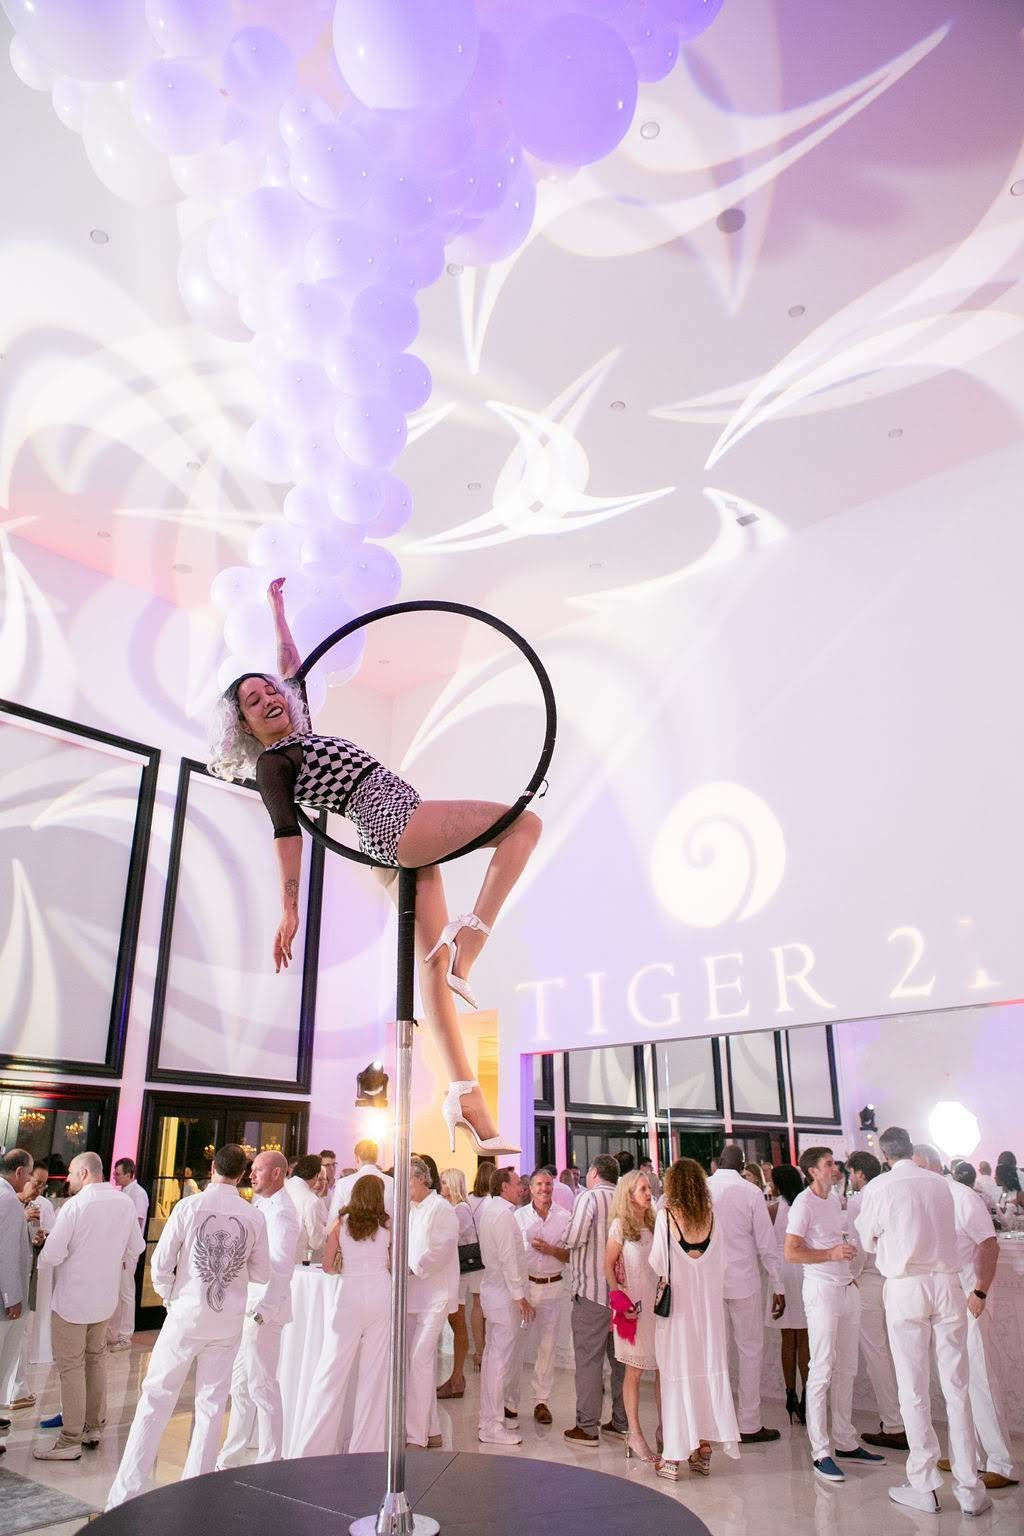 Tiger21_InfamousWhiteParty2019-0200